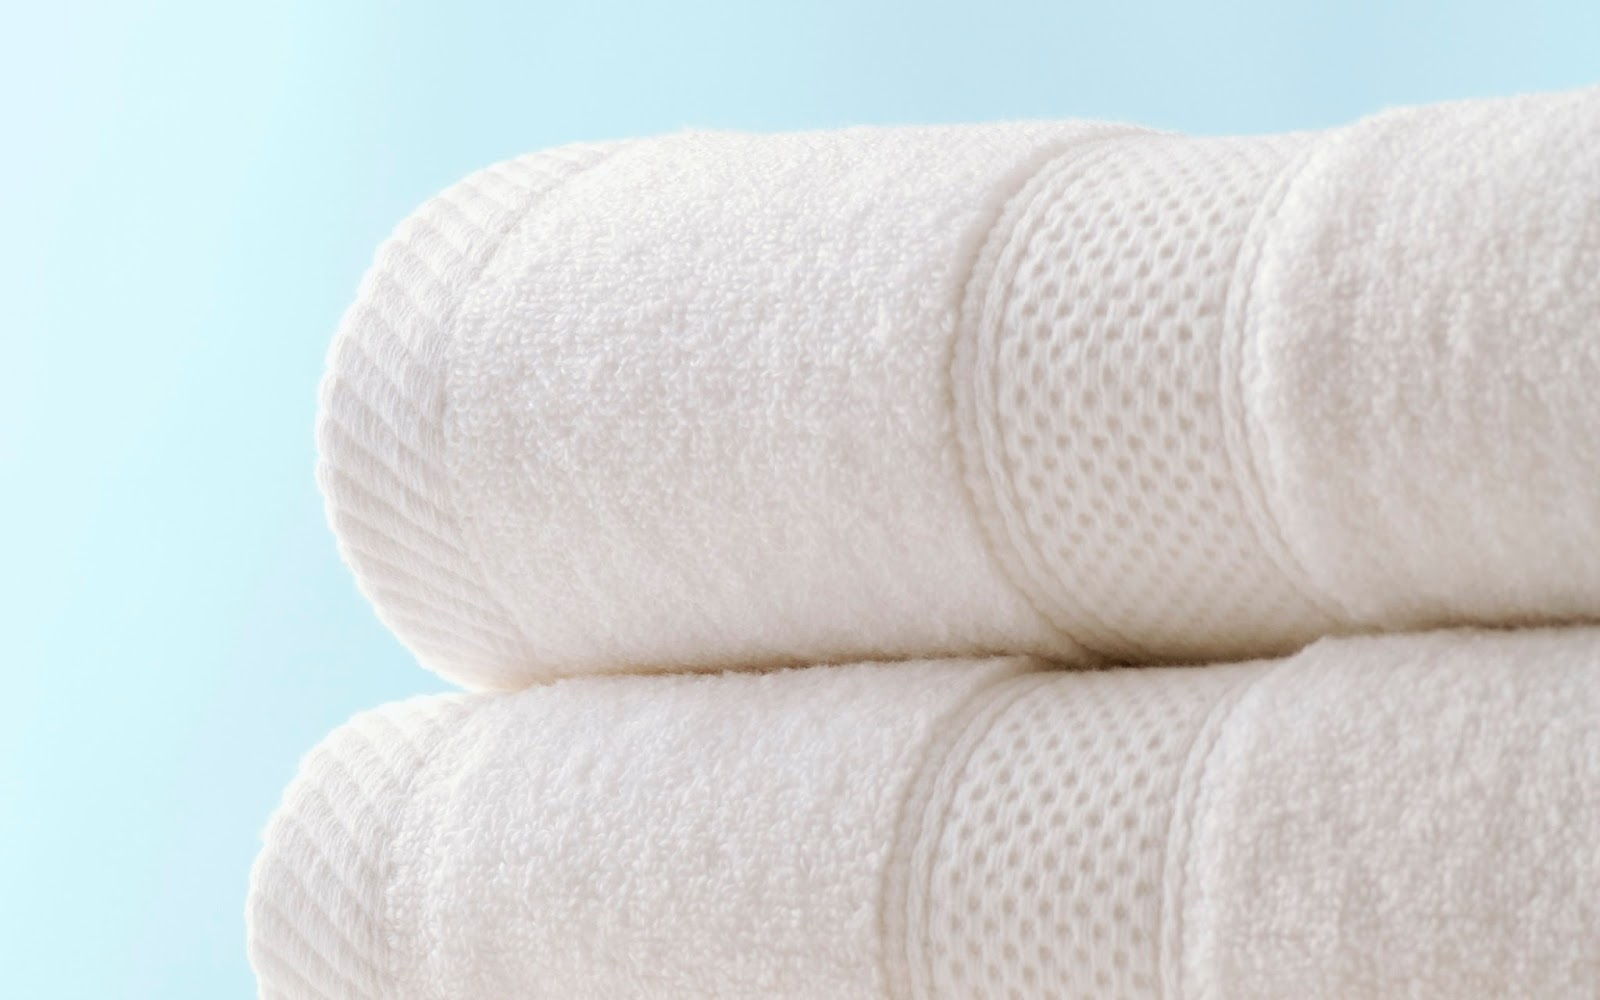 The Secret to Getting Extra-Soft Towels at Home - Muddlex